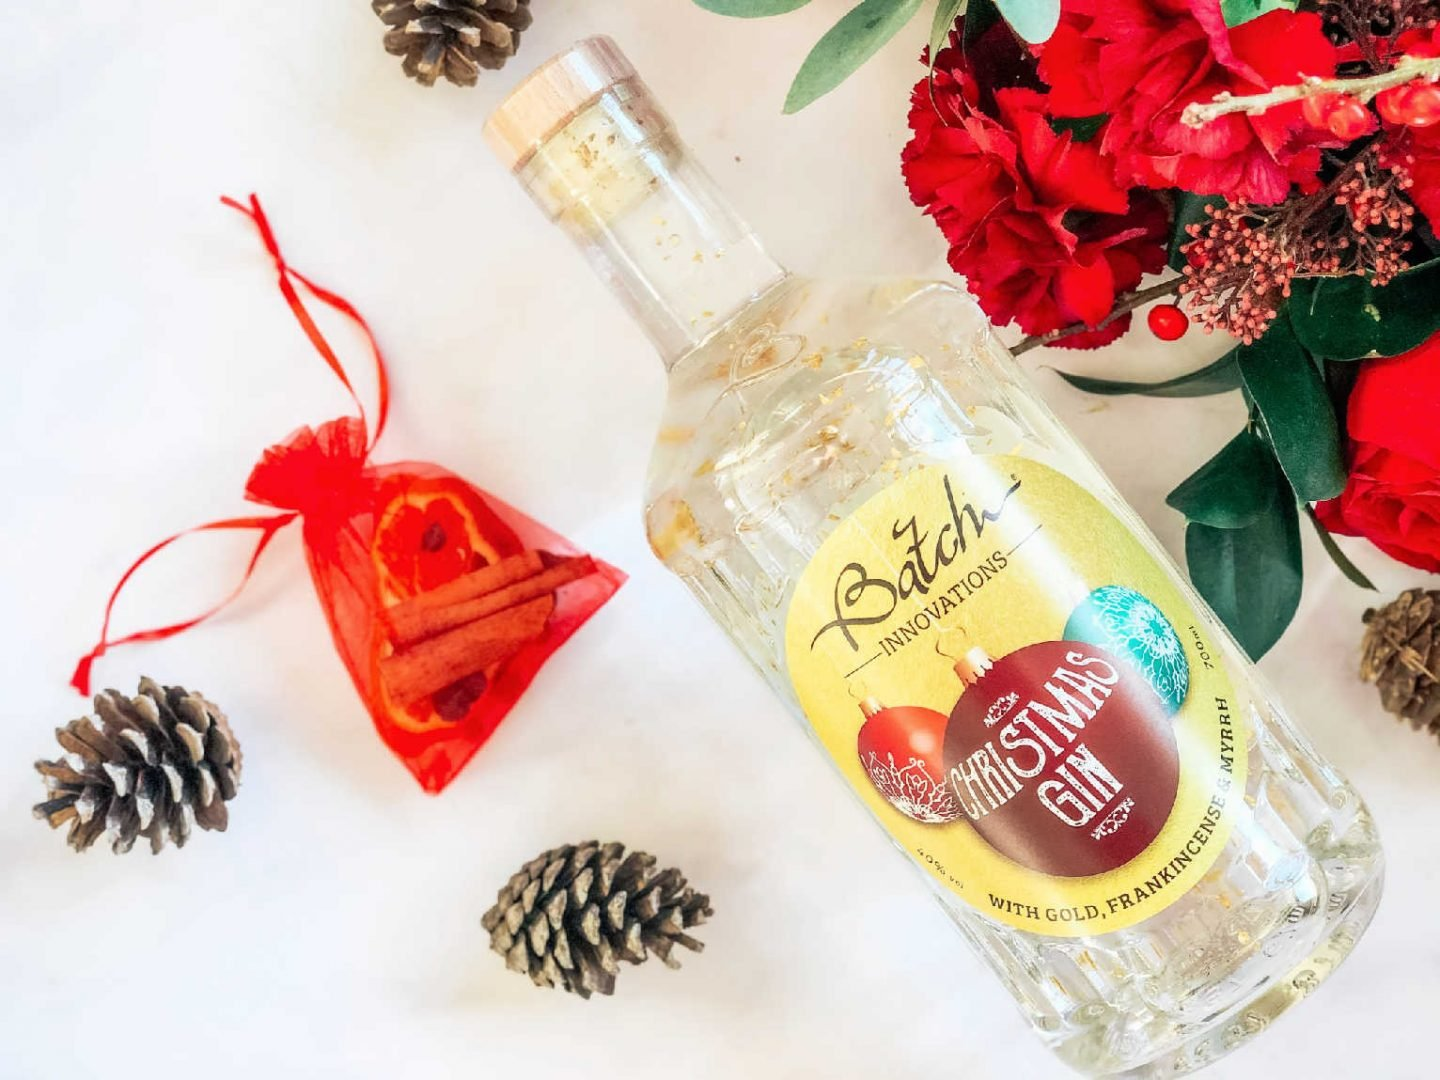 Discount Code for Batch Gin Subscription